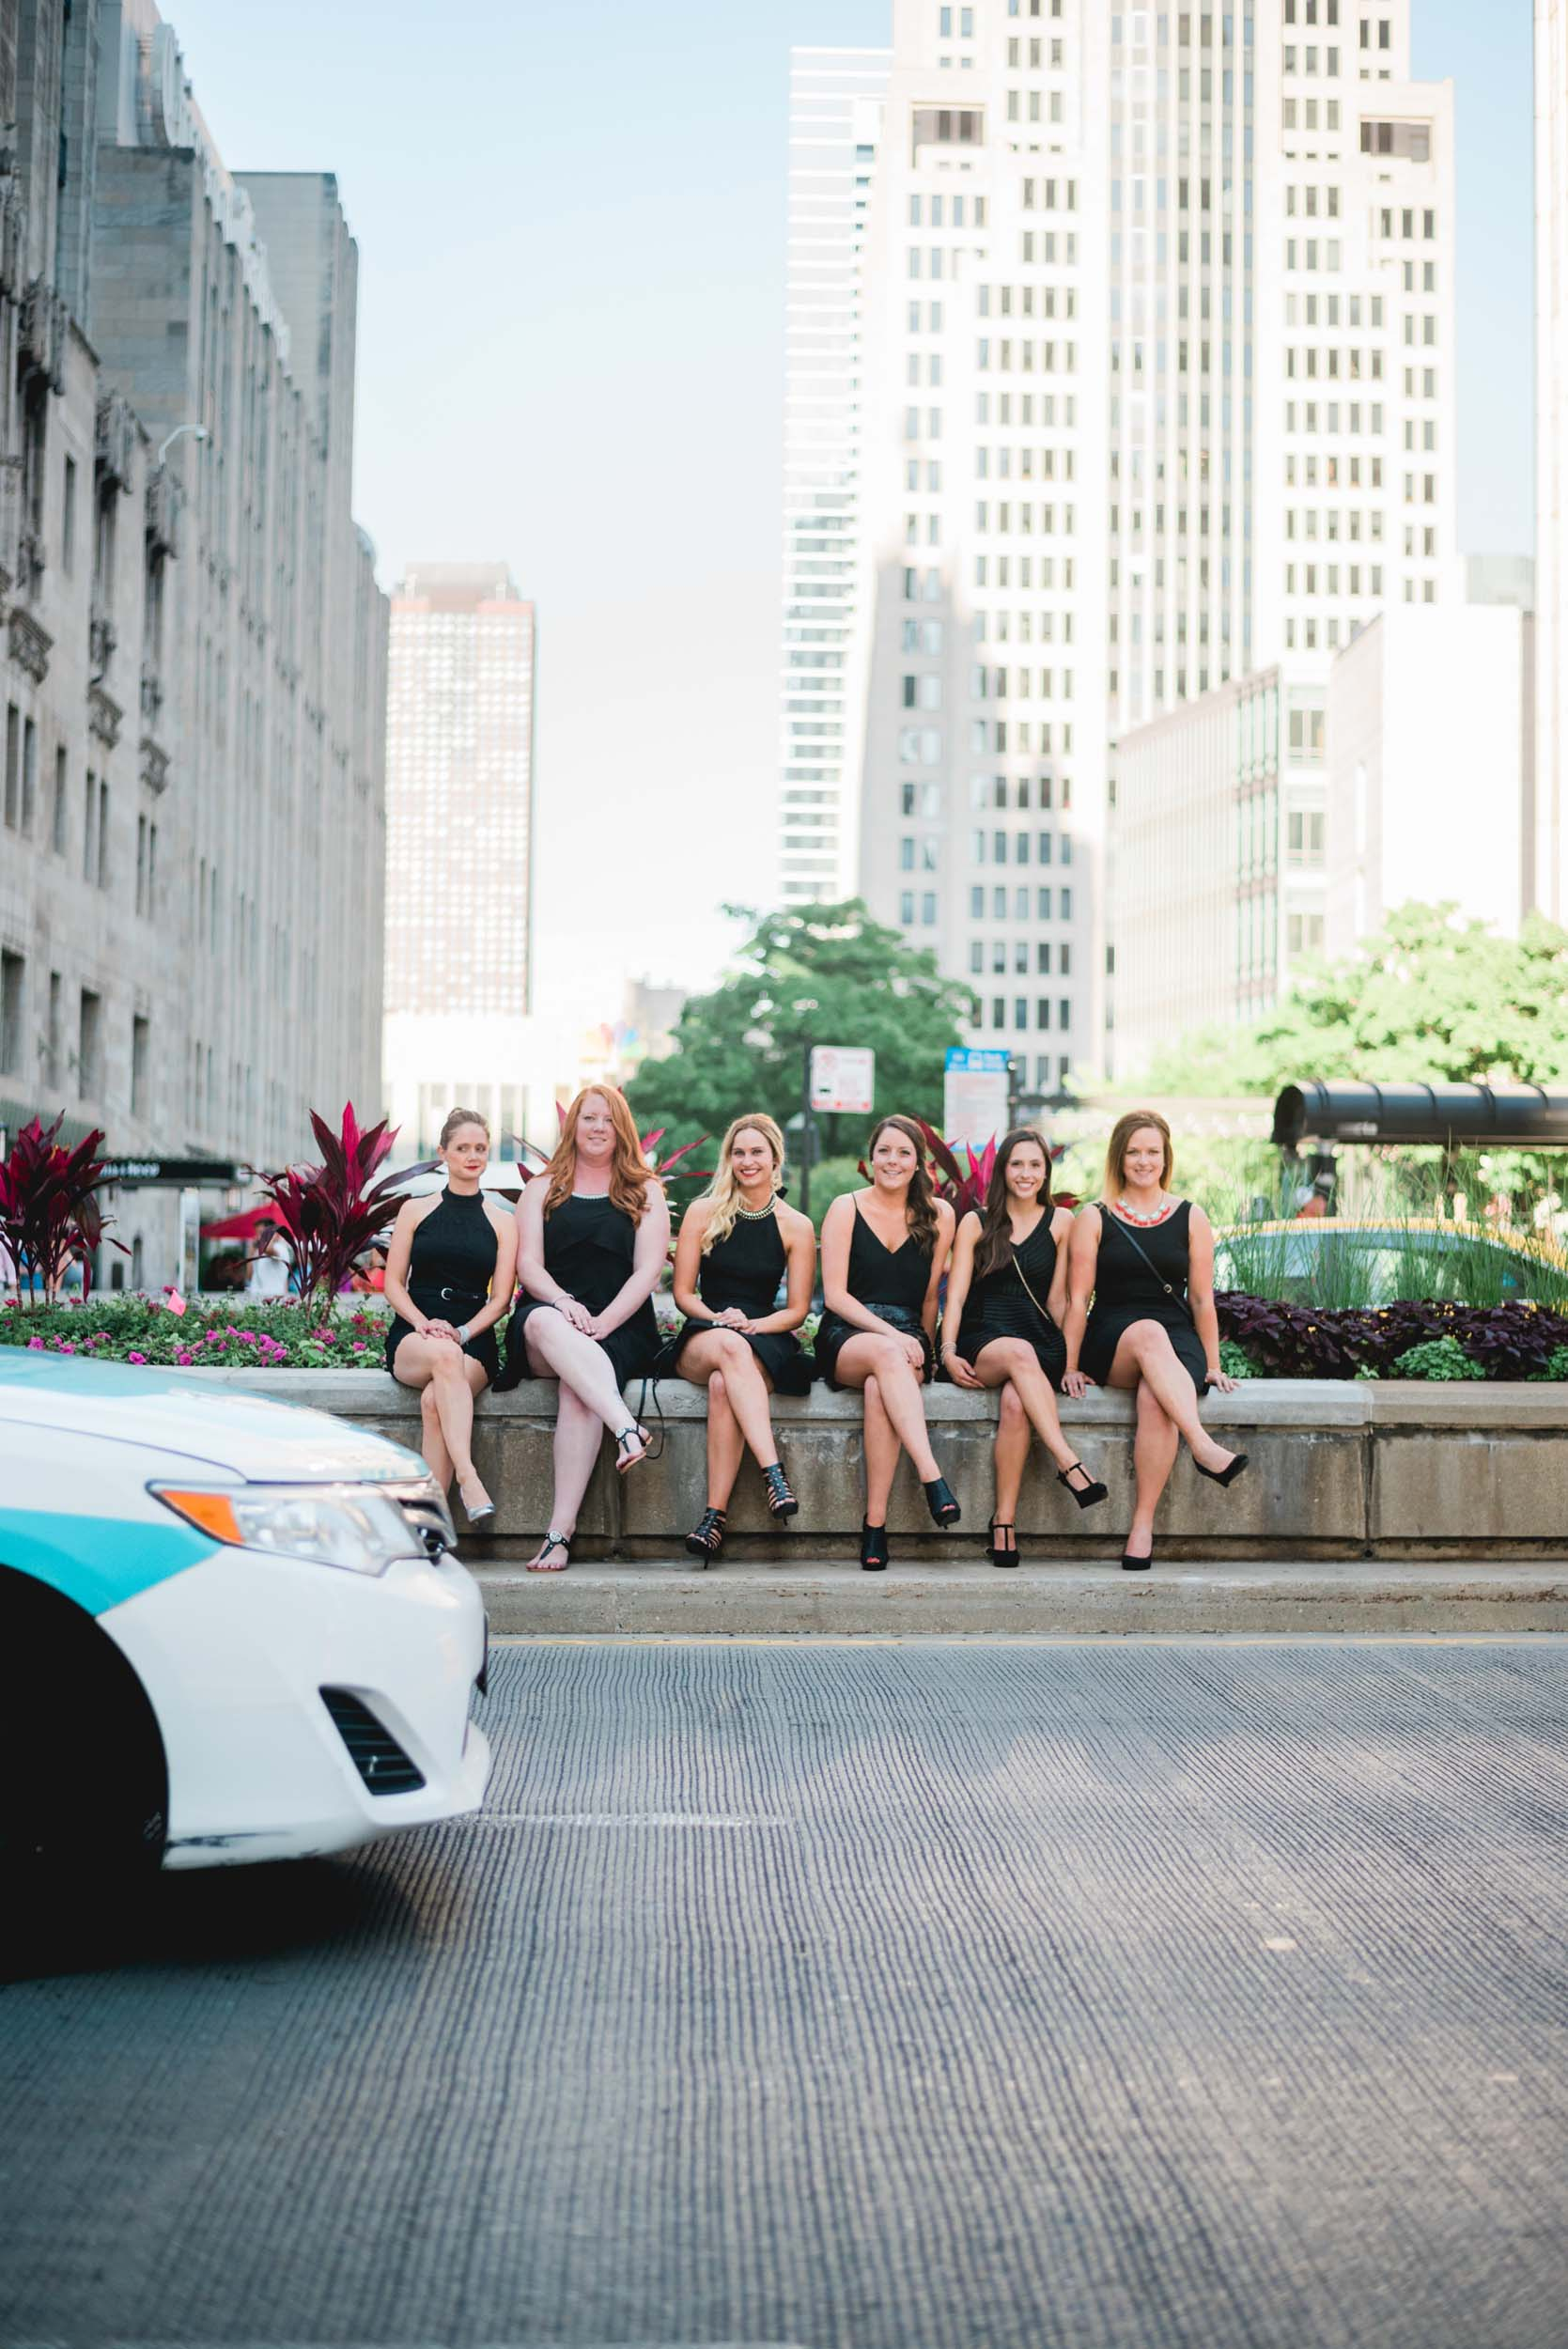 Six female friends on a bachelorette trip together sitting on a stone ledge along a sidewalk in Chicago, USA